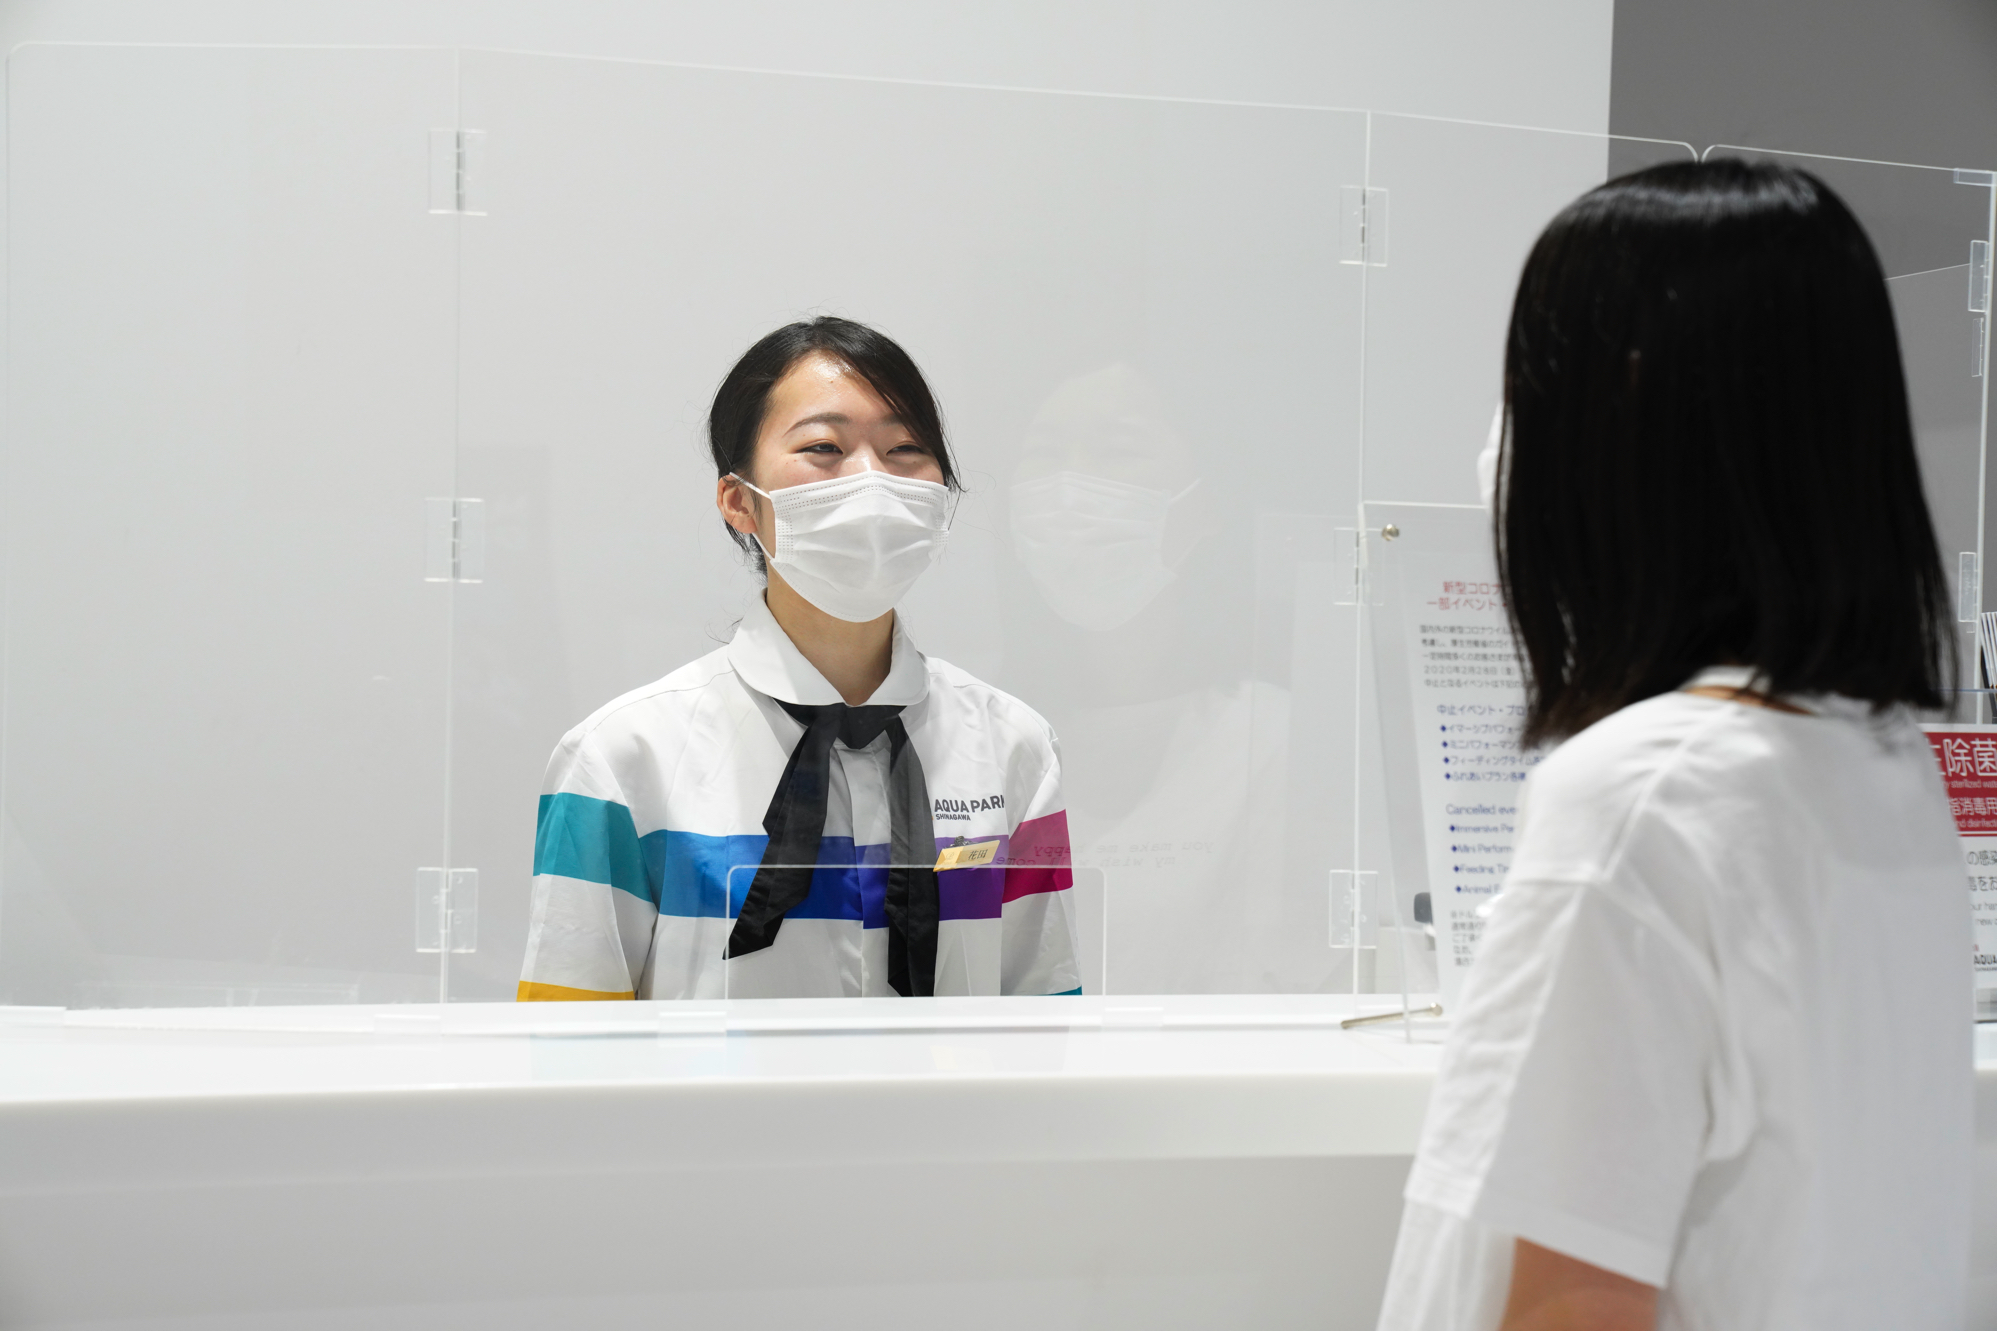 Thoroughly wear staff masks, measure body temperature, wash hands, gargle, and disinfect